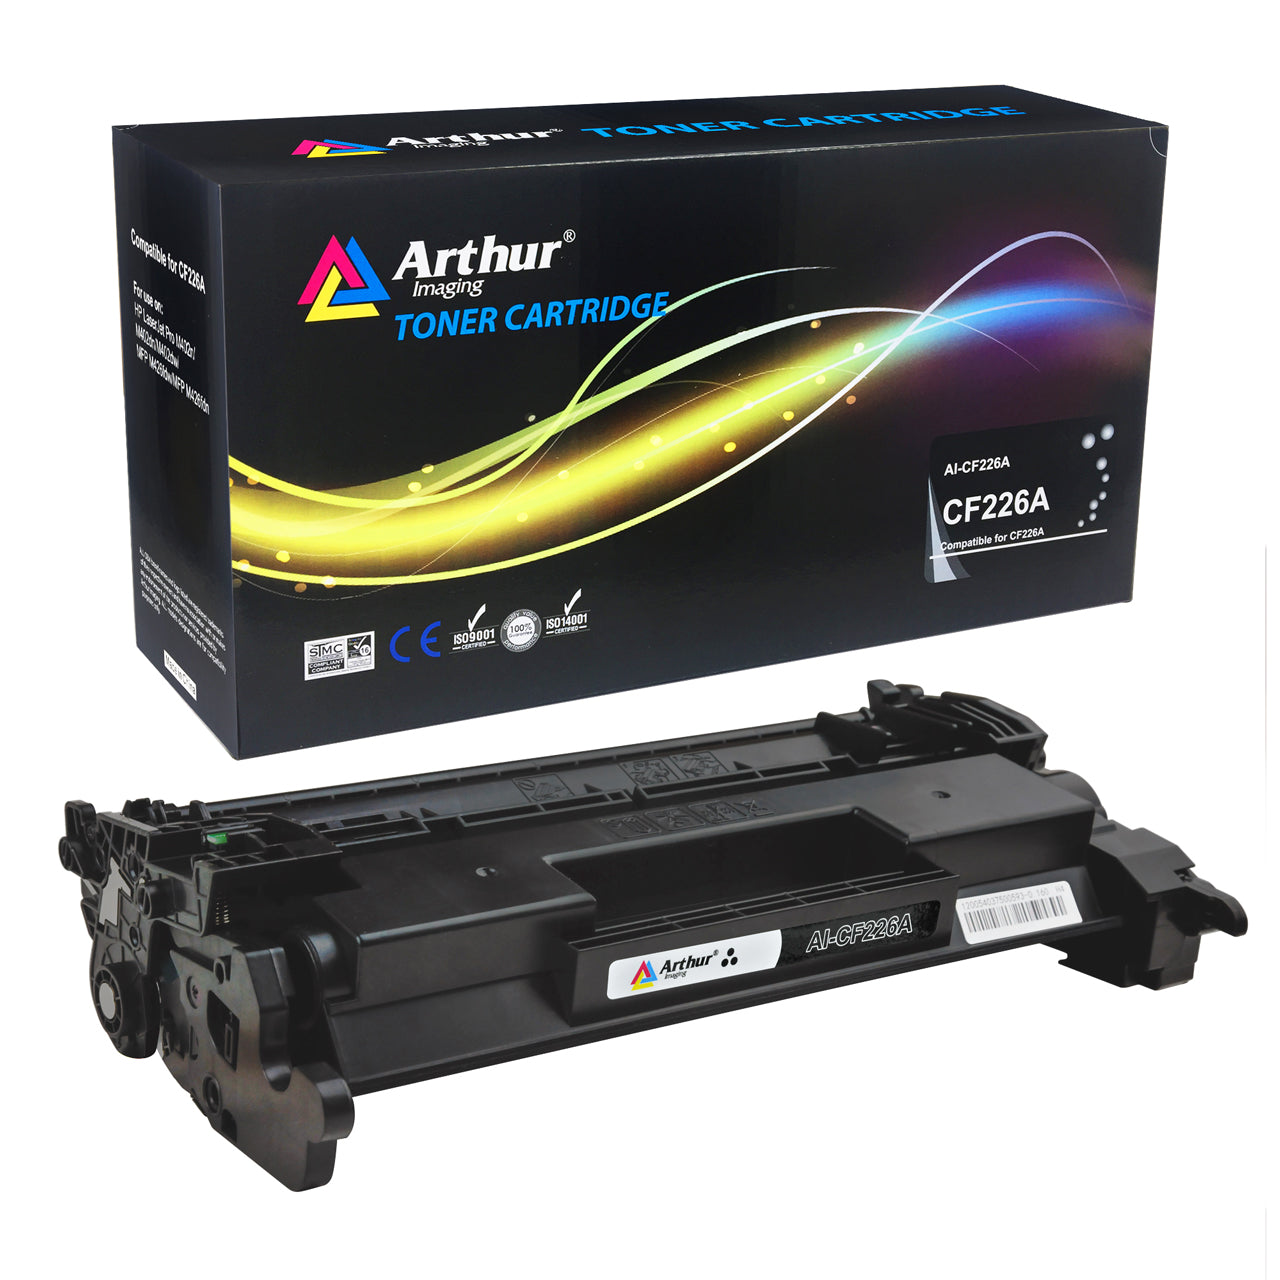 Arthur Imaging Compatible High Yield Toner Cartridge Replacement for HP CF226A CF226X (Black, 1-Pack)